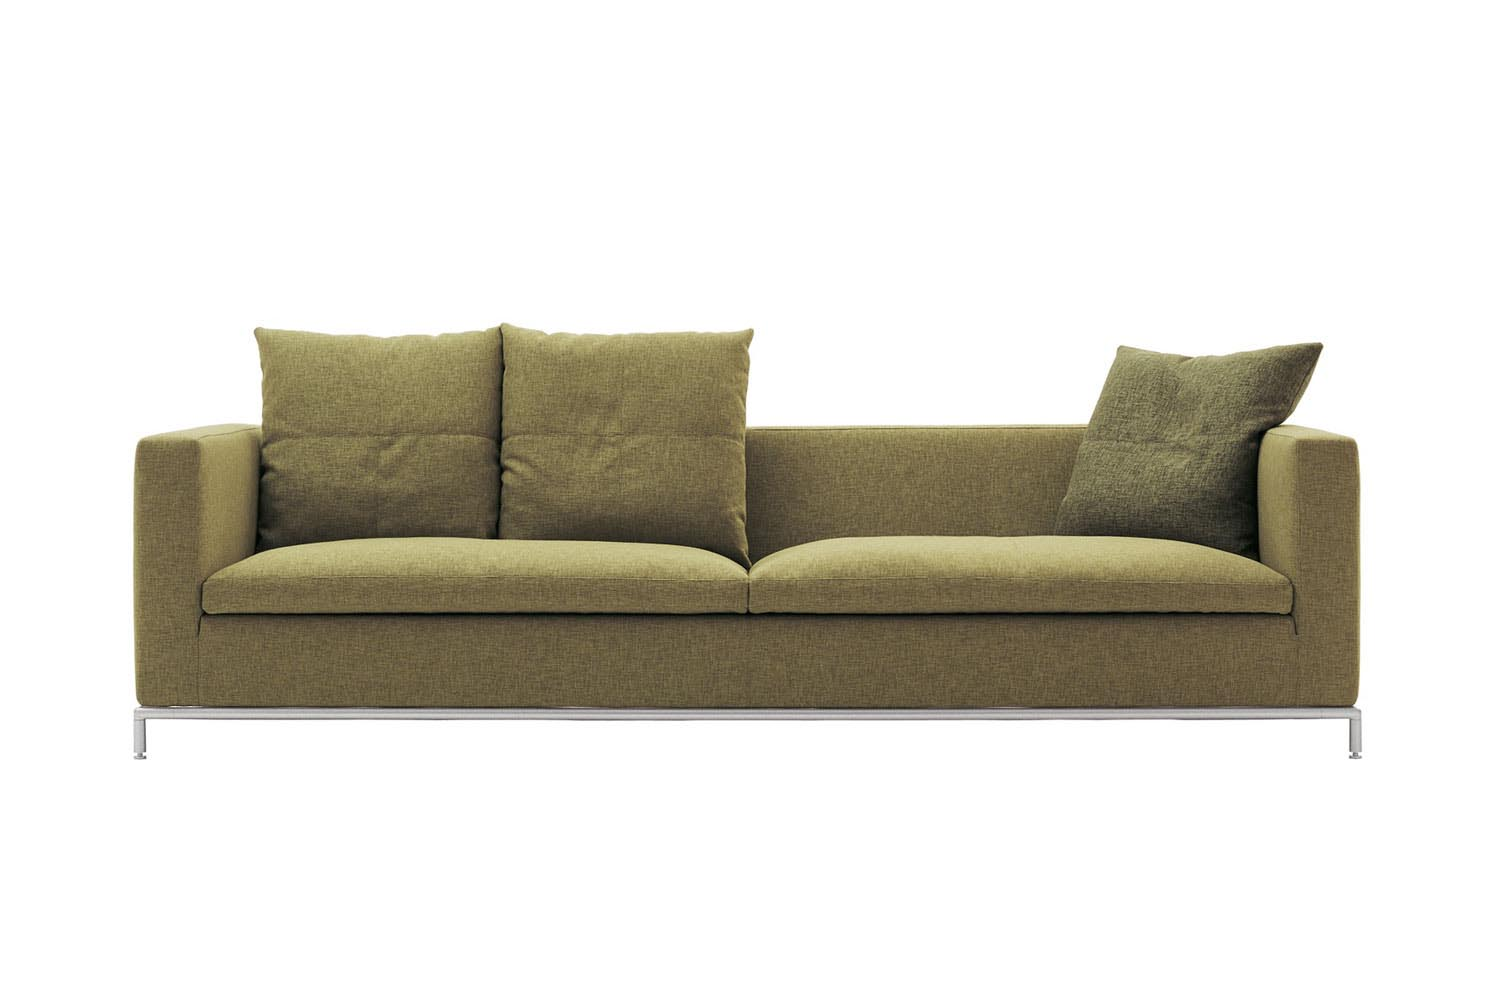 George Sofa by Antonio Citterio for B&B Italia | Space ...